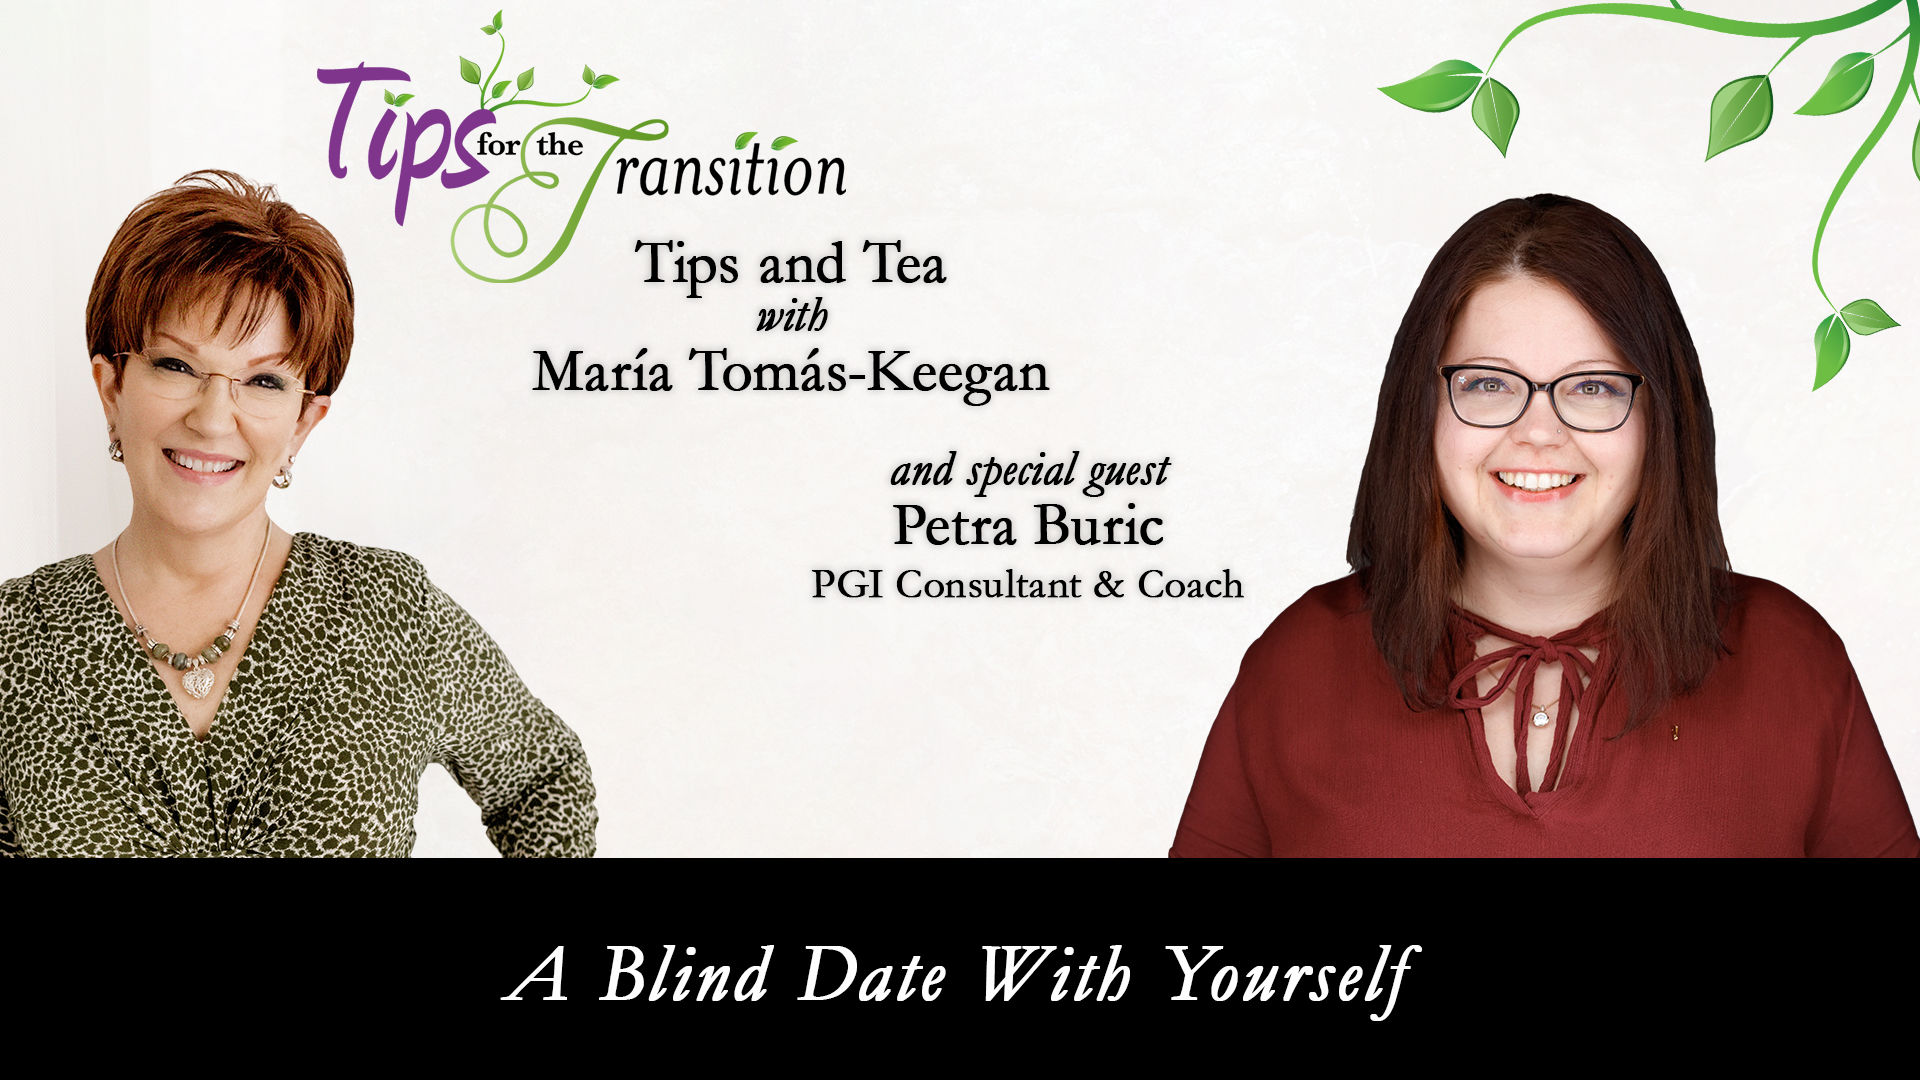 A Blind Date With Yourself